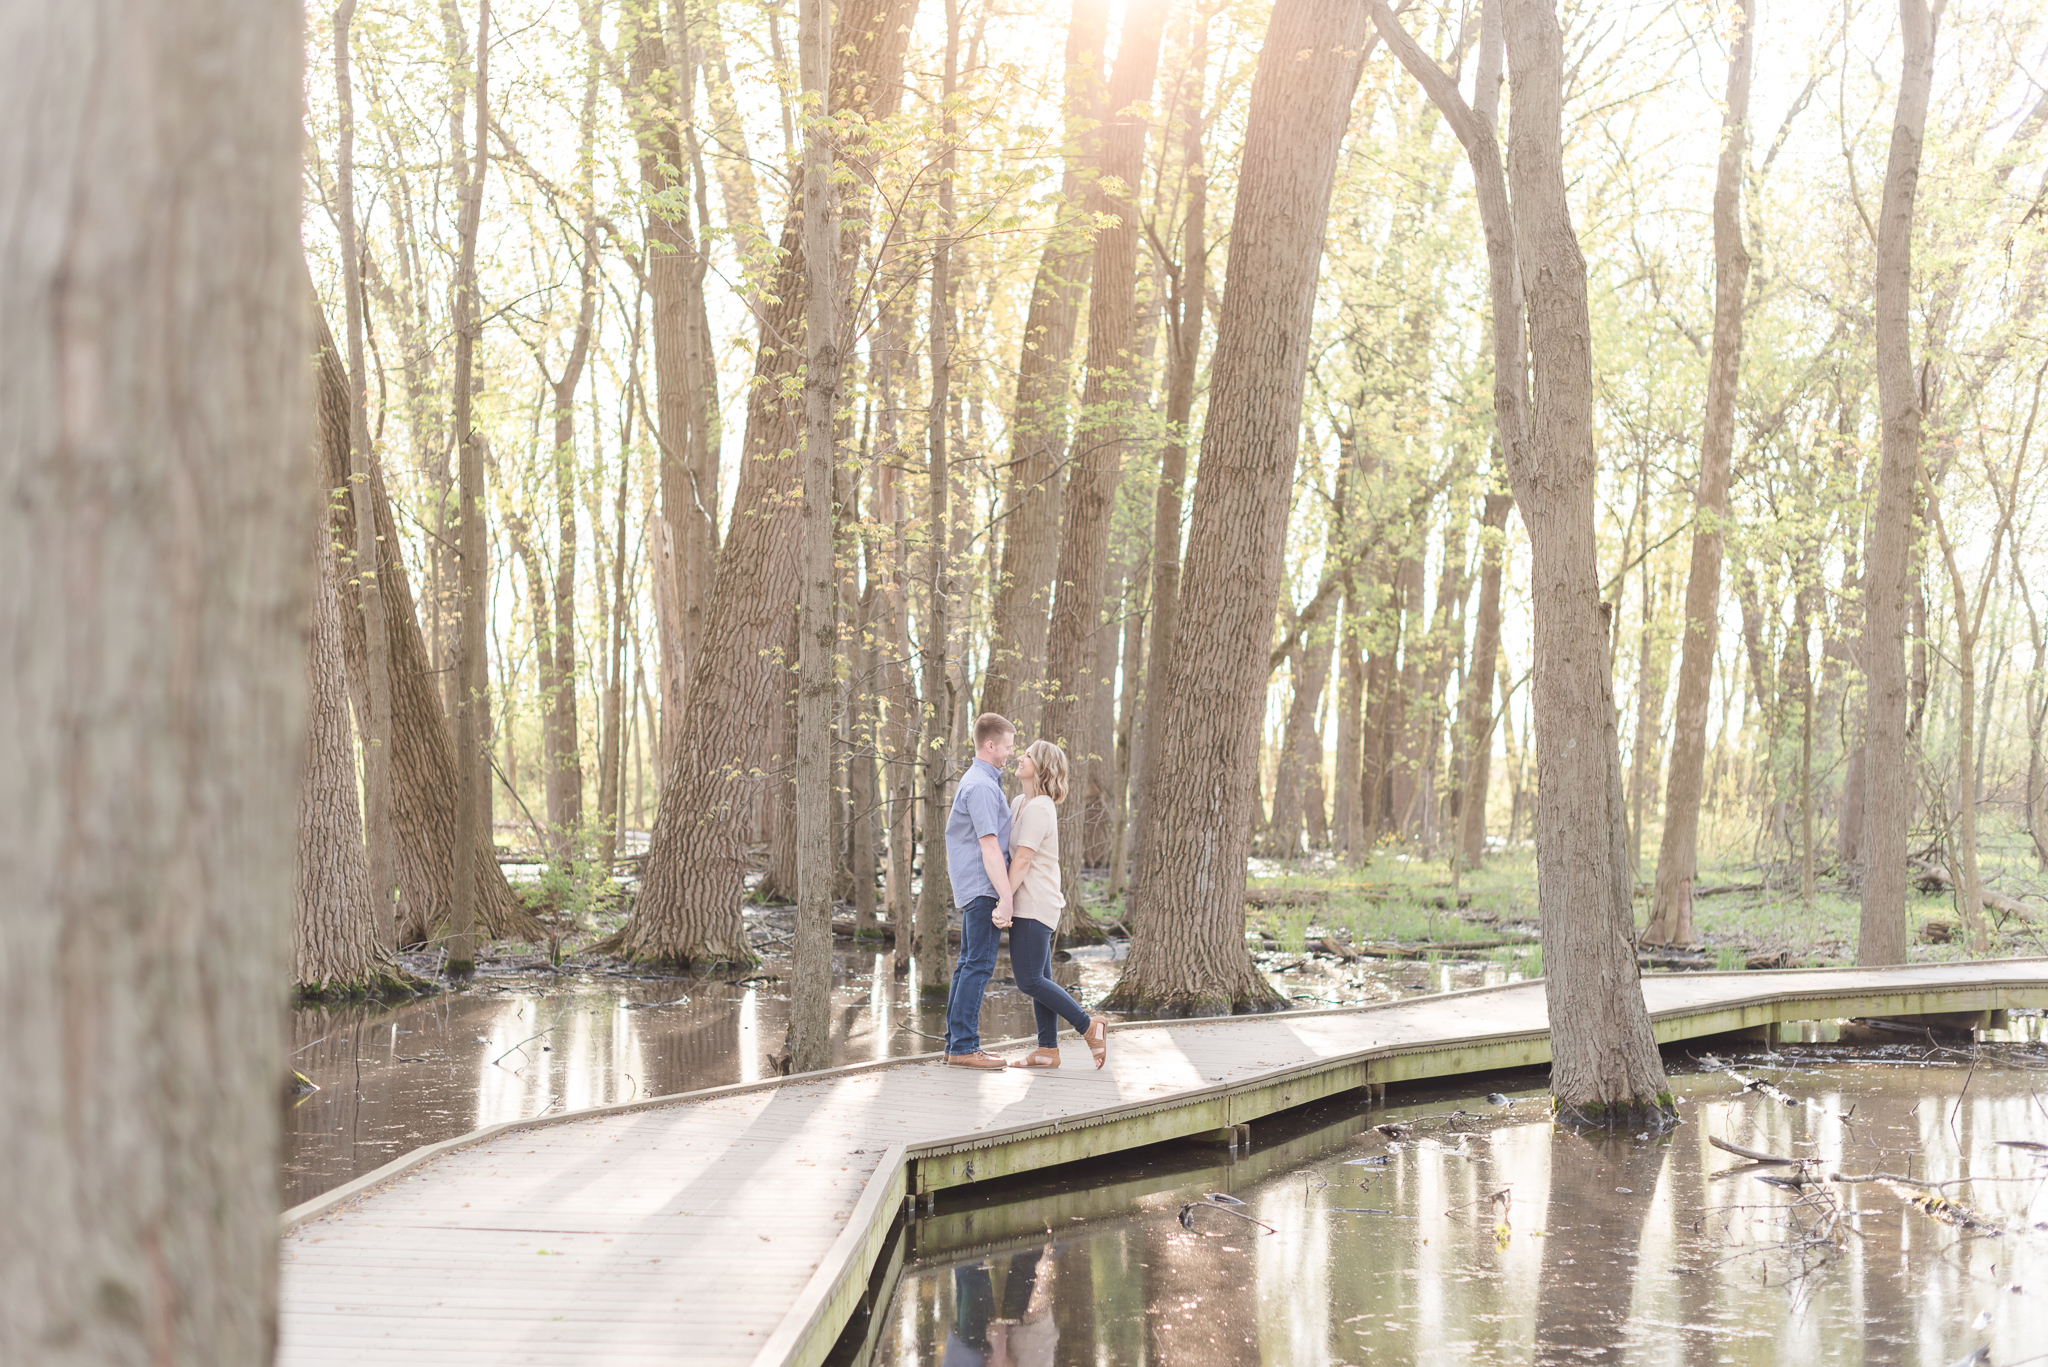 Richie Woods Nature Preserve and Mustard Seed Gardens Engagement Session Wedding Photos-16.jpg